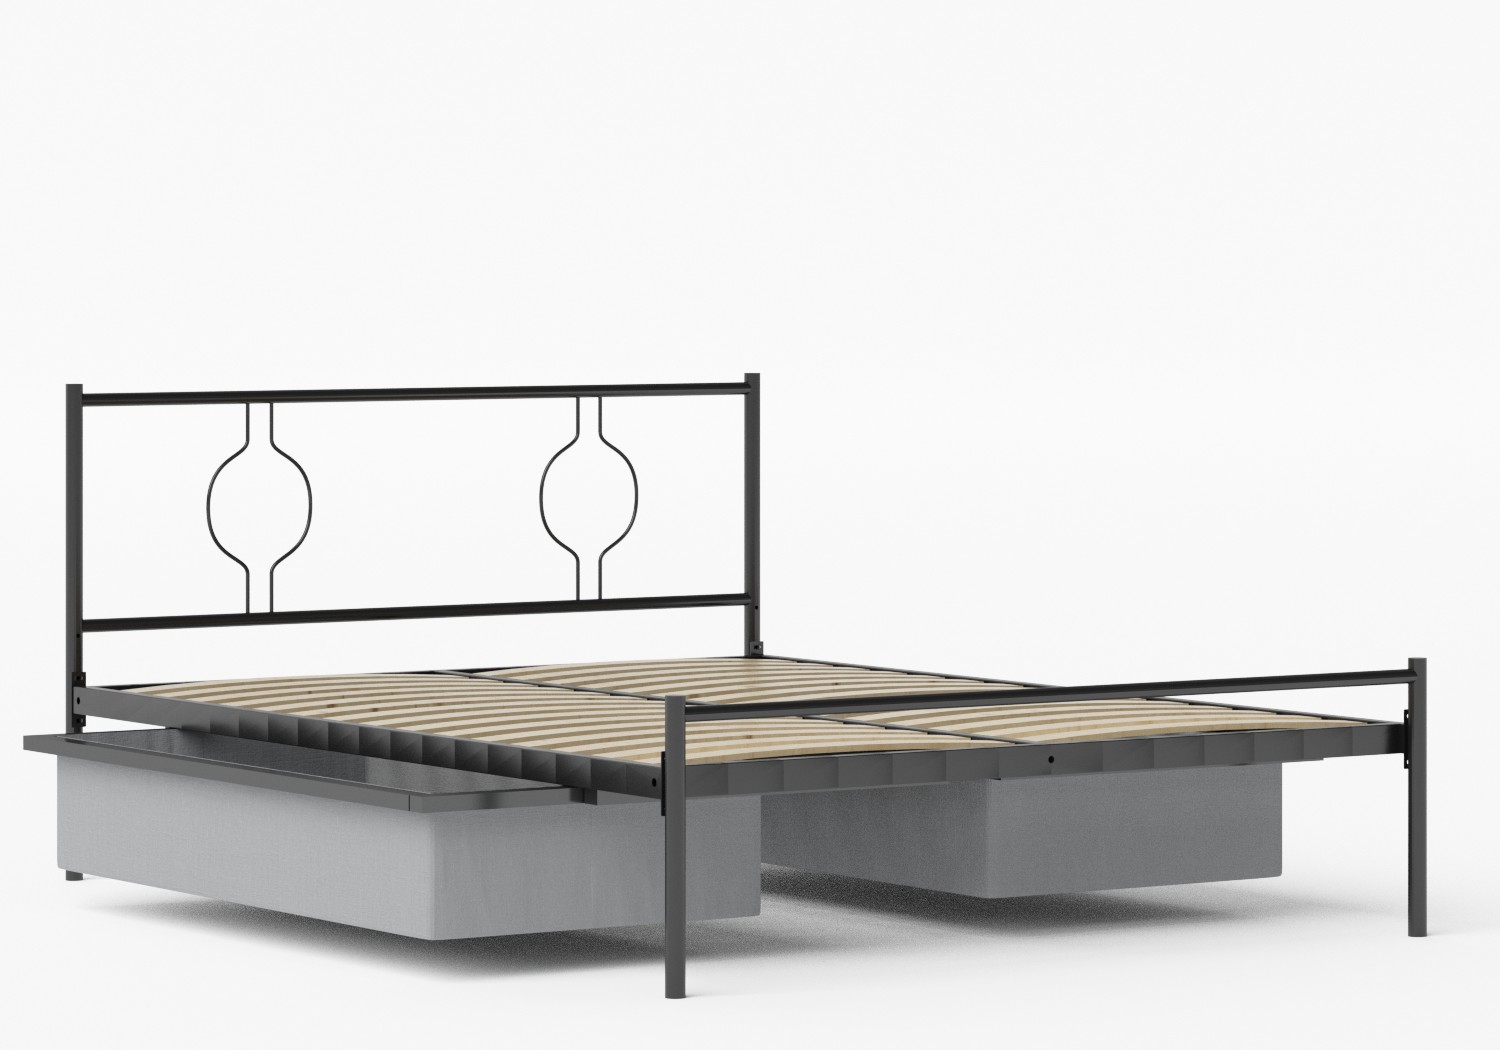 Meiji Iron/Metal Bed in Satin Black shown with underbed storage